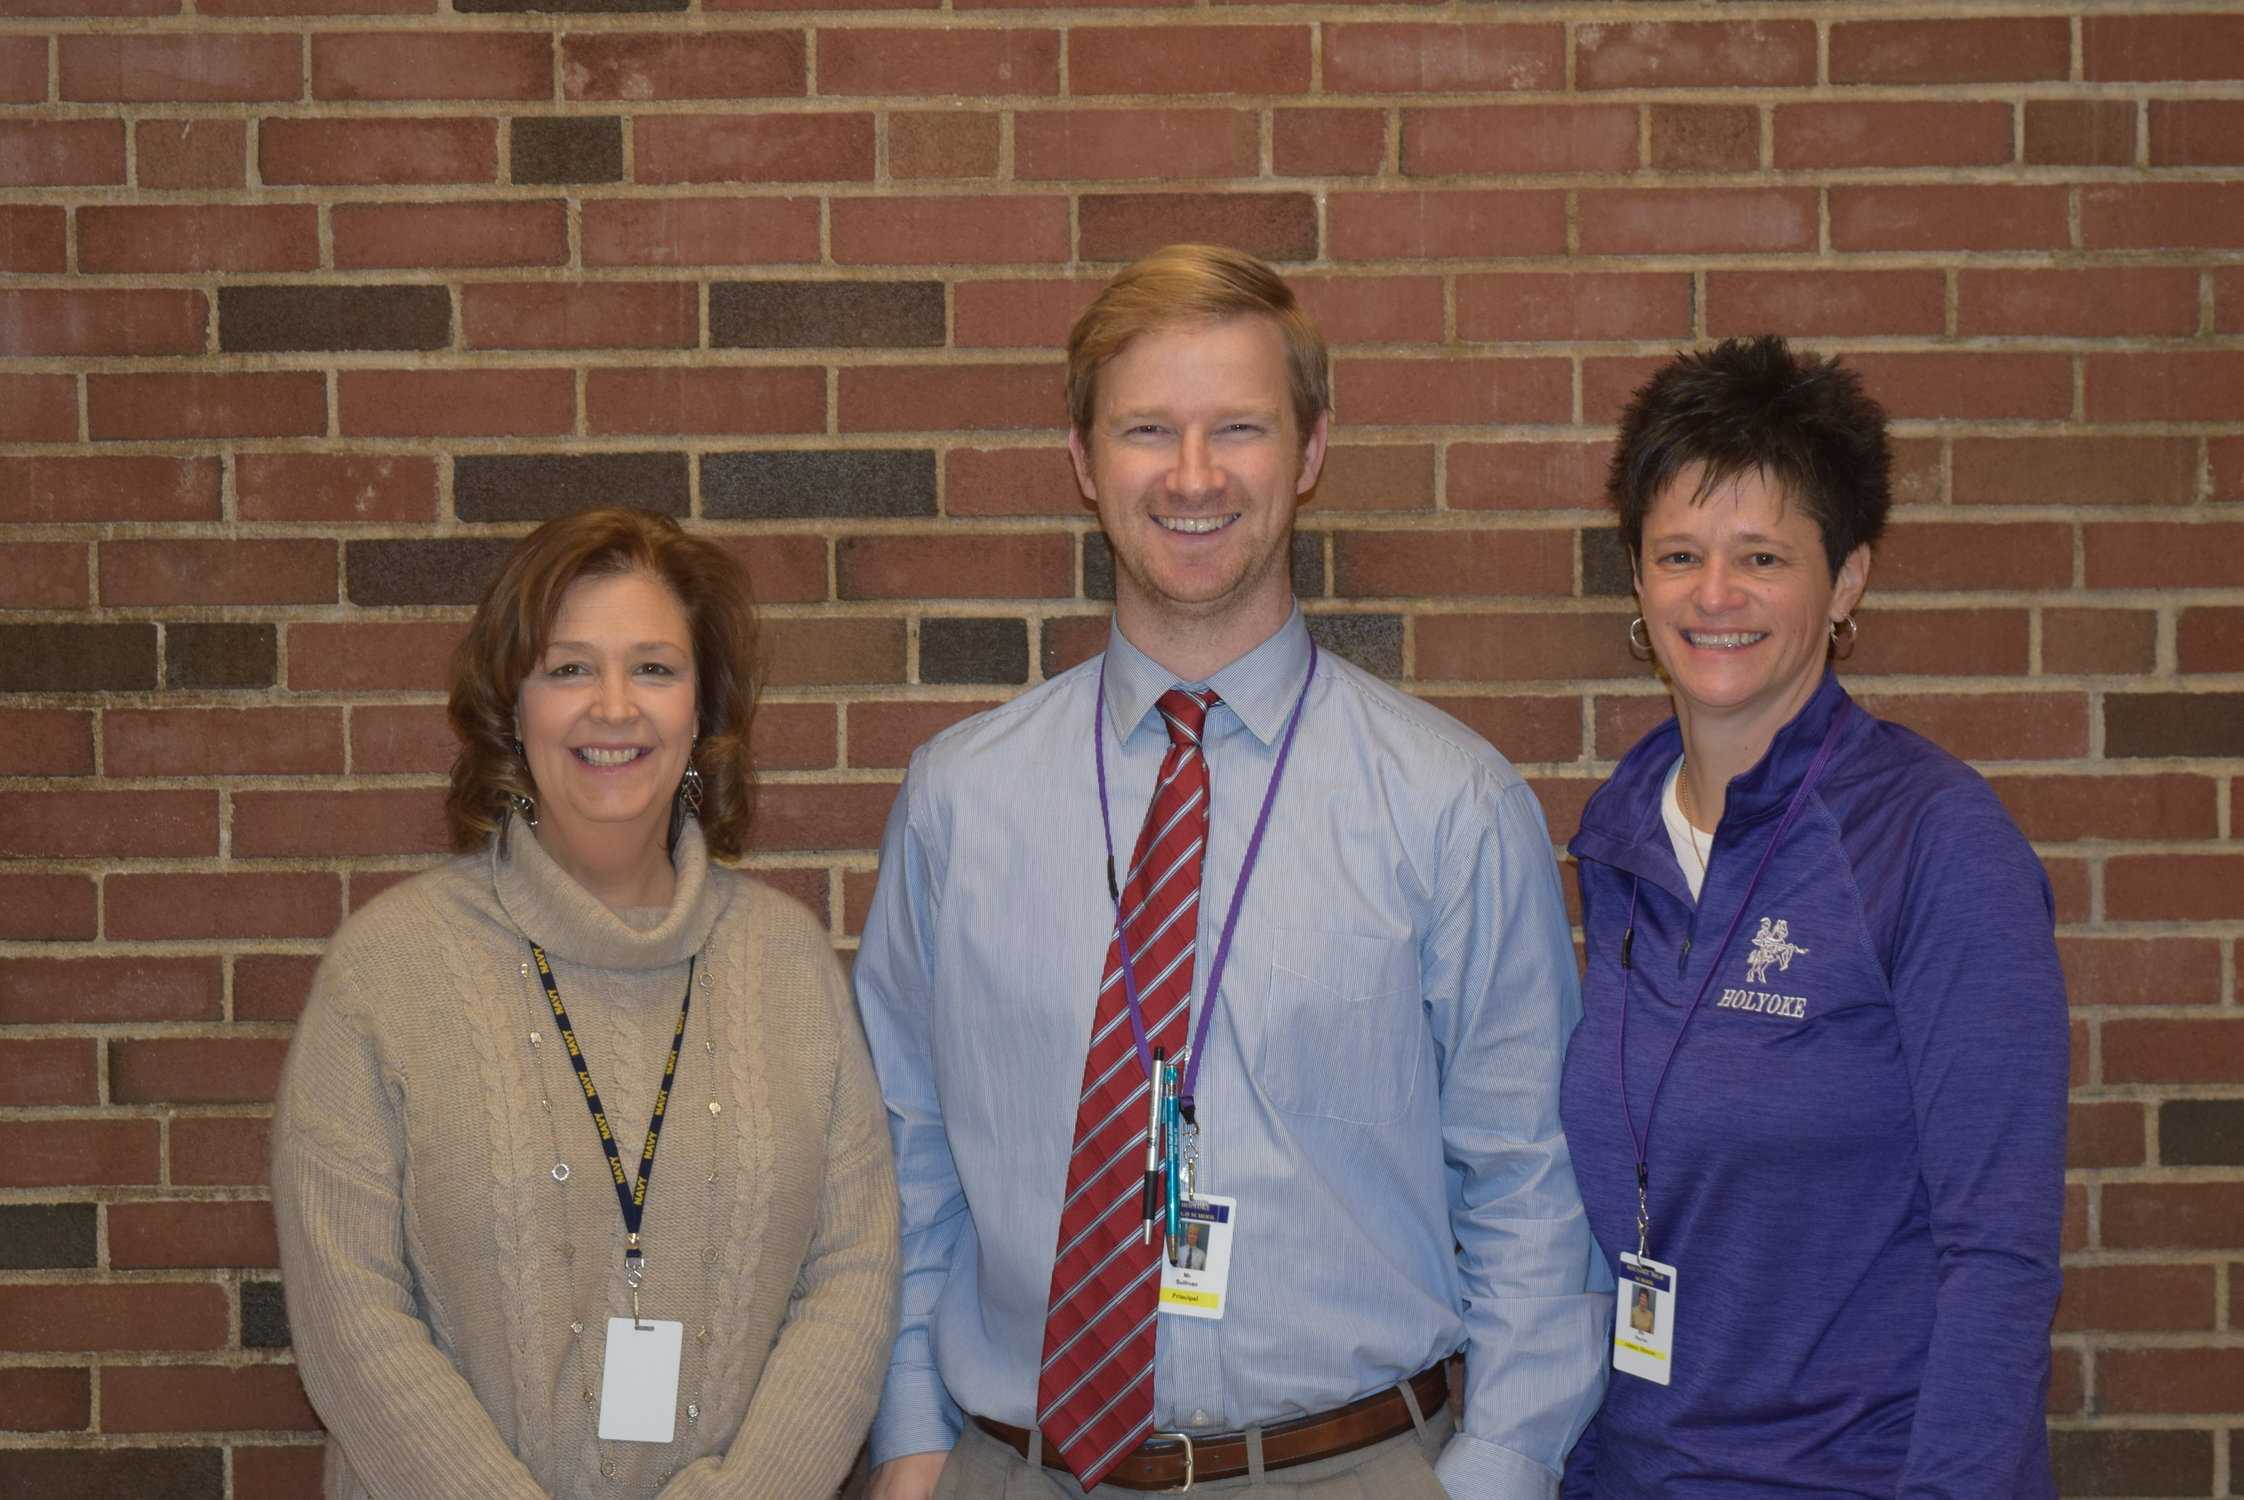 Mrs. Reardon, Principal Stephen Sullivan, and Athletic Director Melanie Martin (Photo Credits to Brendan Leahy)